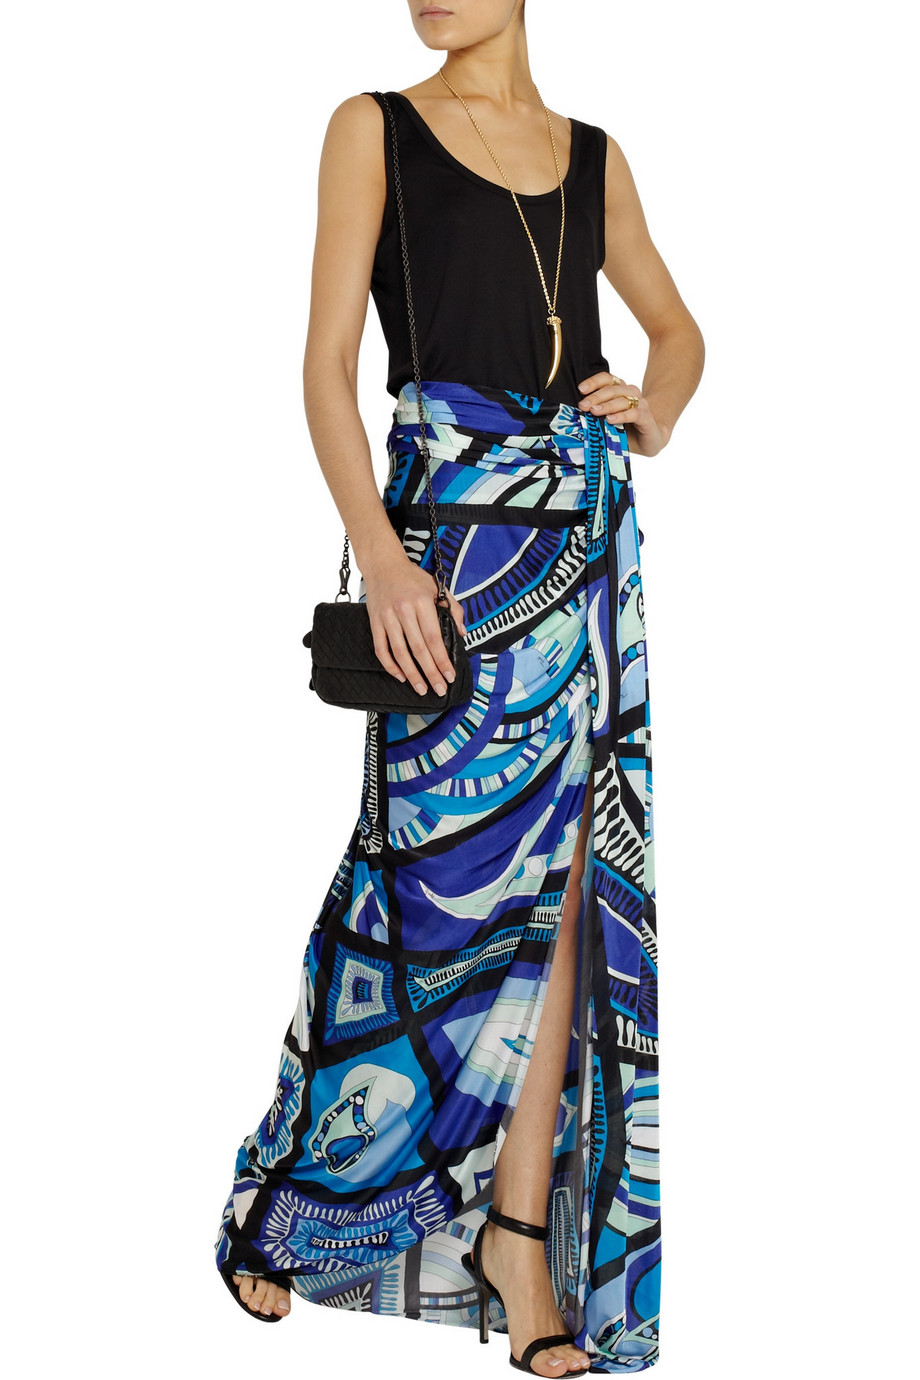 Emilio Pucci  outfit